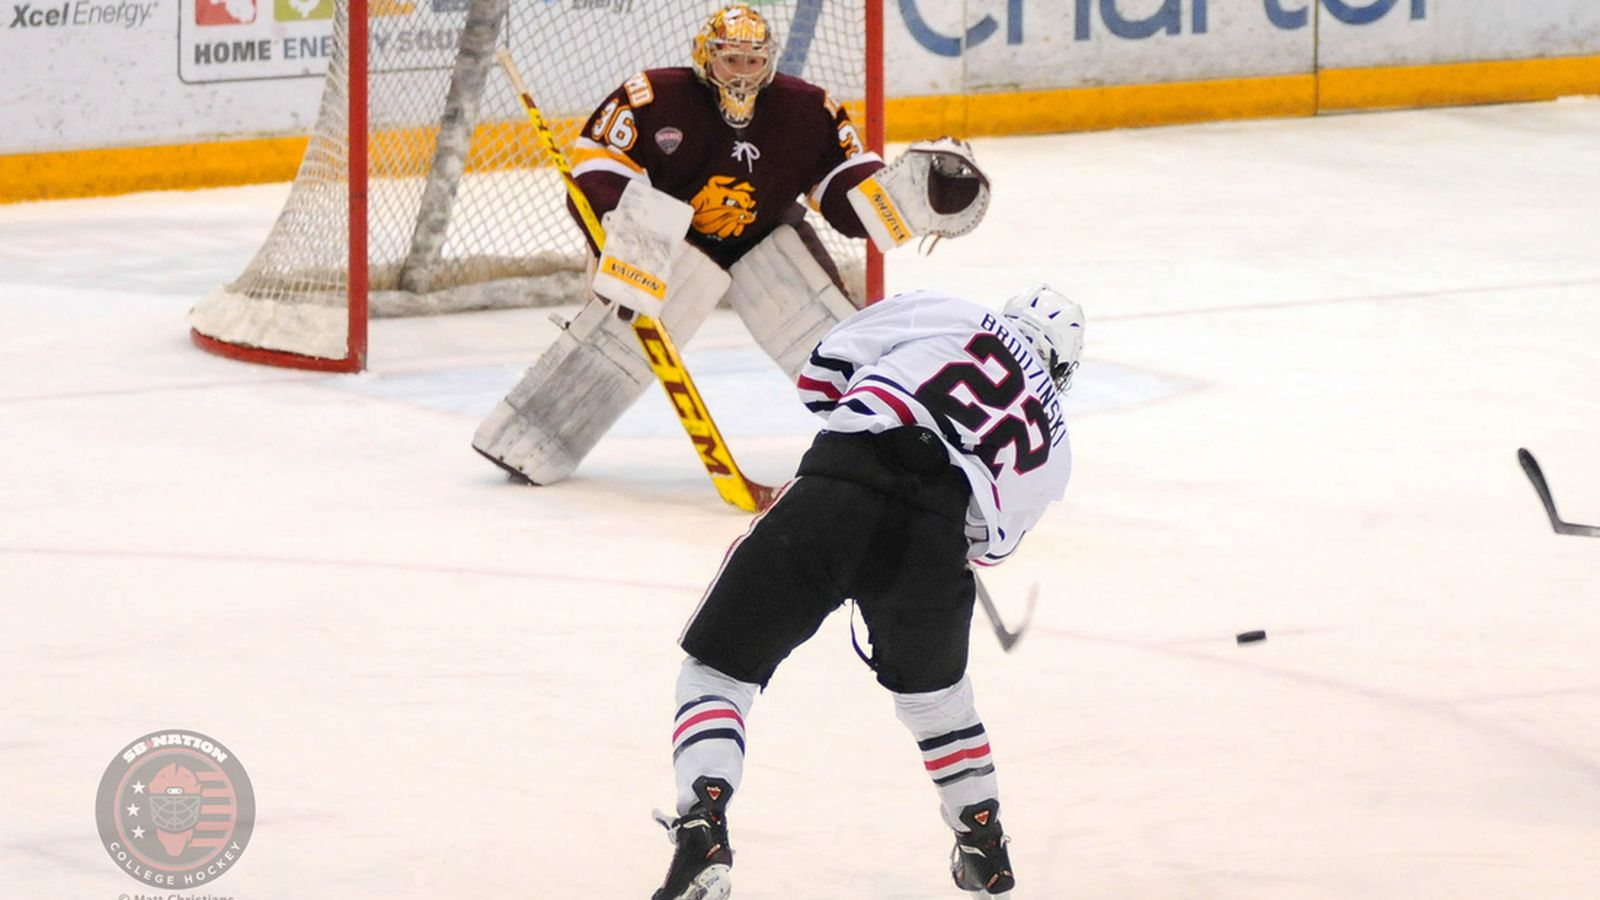 NCHC Playoffs: St. Cloud State Claims Inaugural Penrose